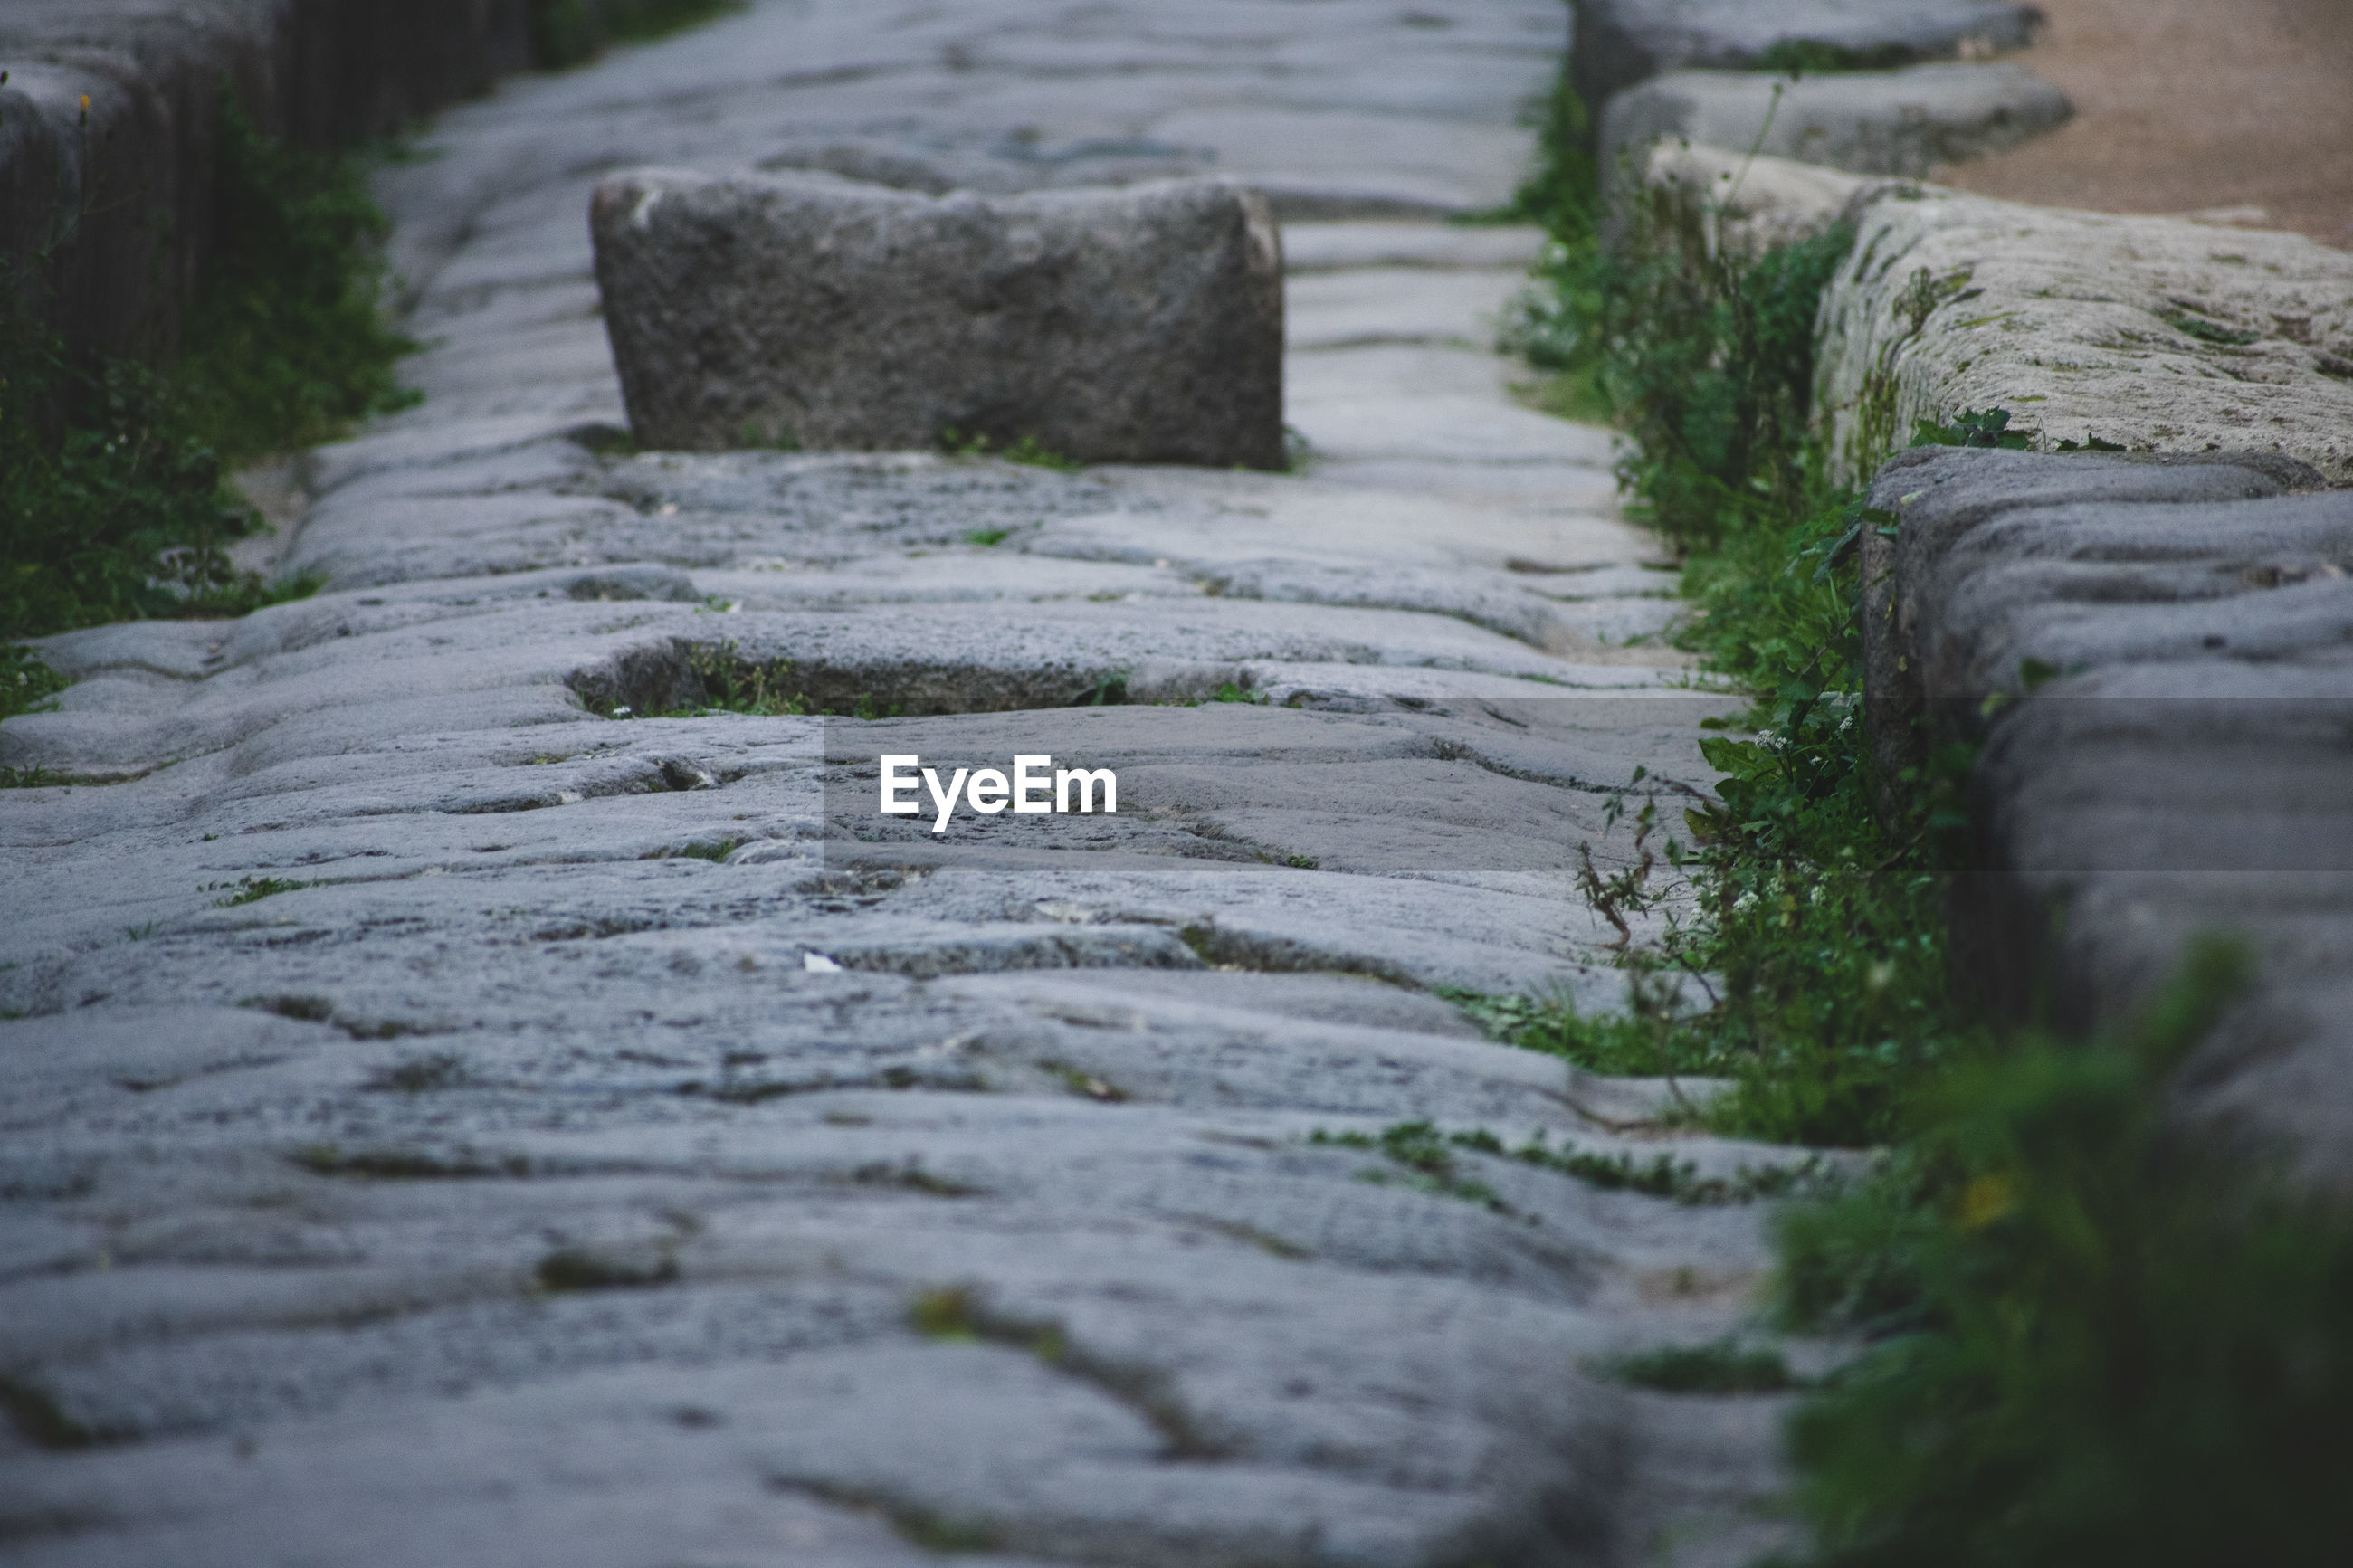 SURFACE LEVEL OF STONE FOOTPATH